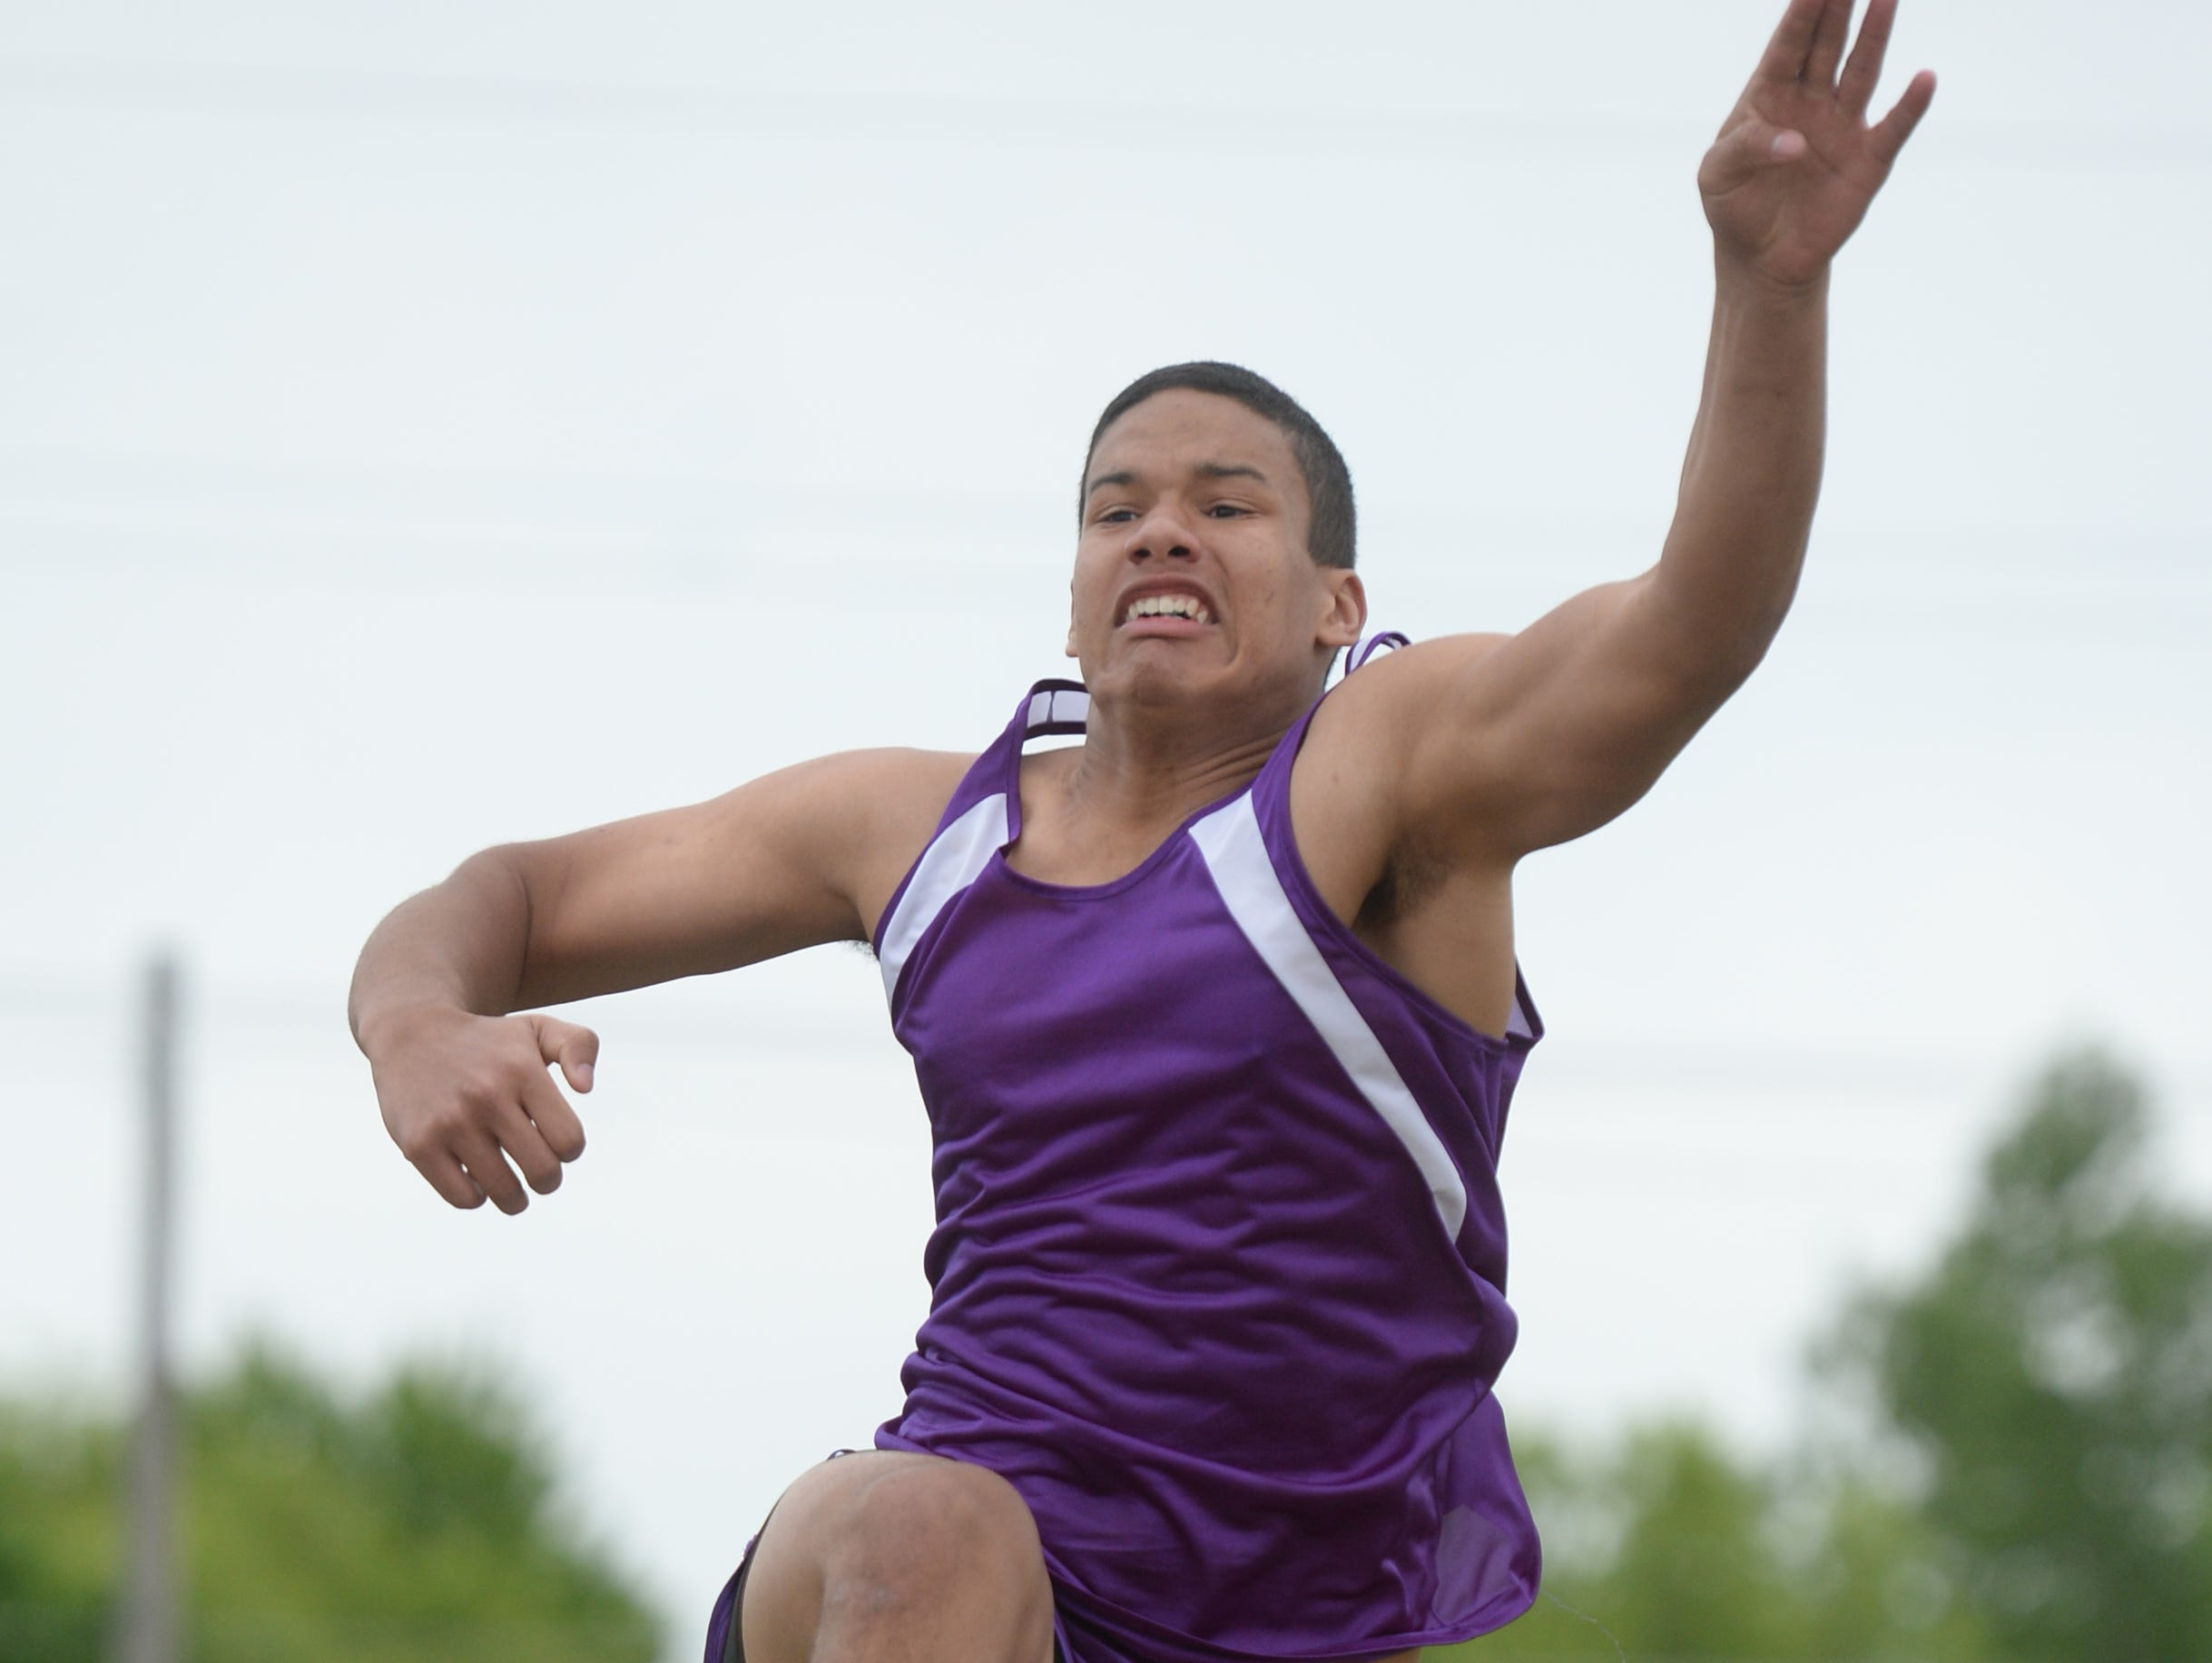 Hagerstown's Martin Block competes in the long jump during the TEC Track and Field meet Thursday, May 14, 2015, at Northeastern in Fountain City.